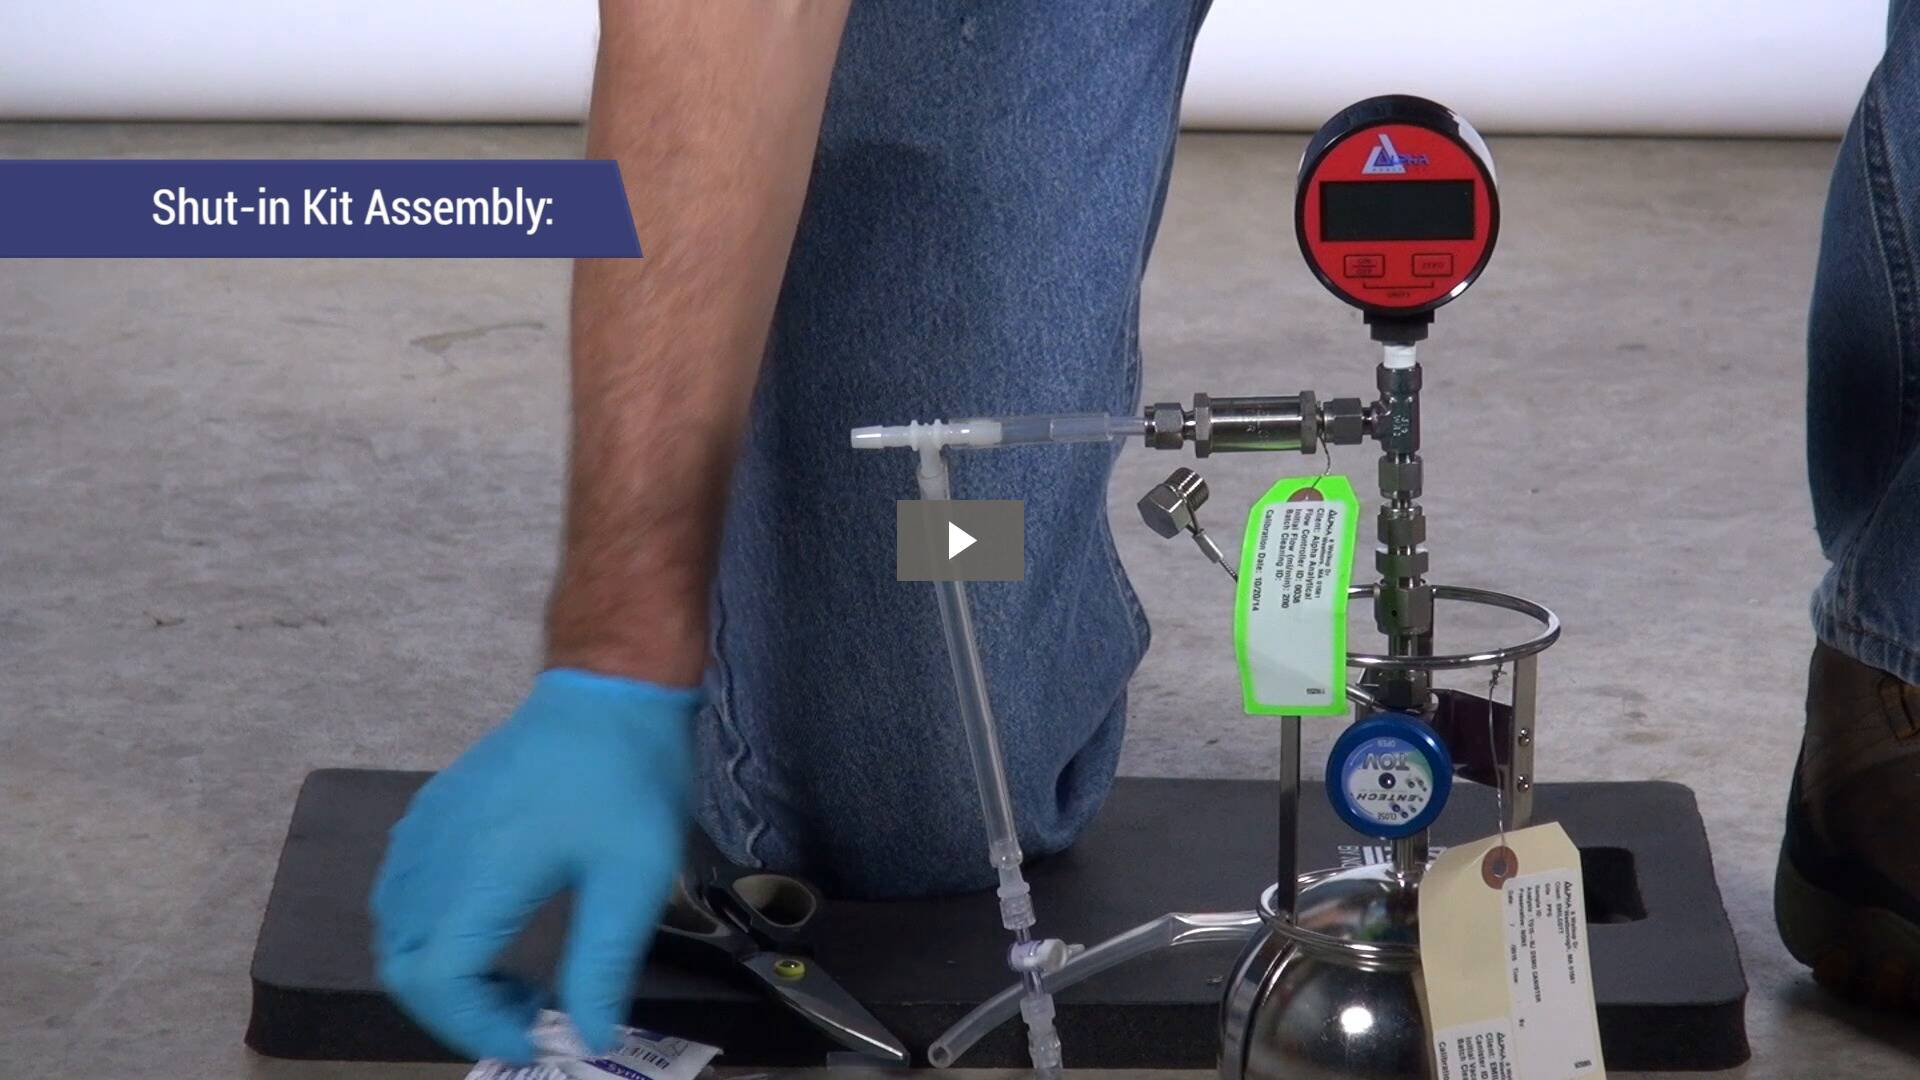 Click here to view the Alpha Analytical Component Assembly and Shut in Leak Check Demonstration Video